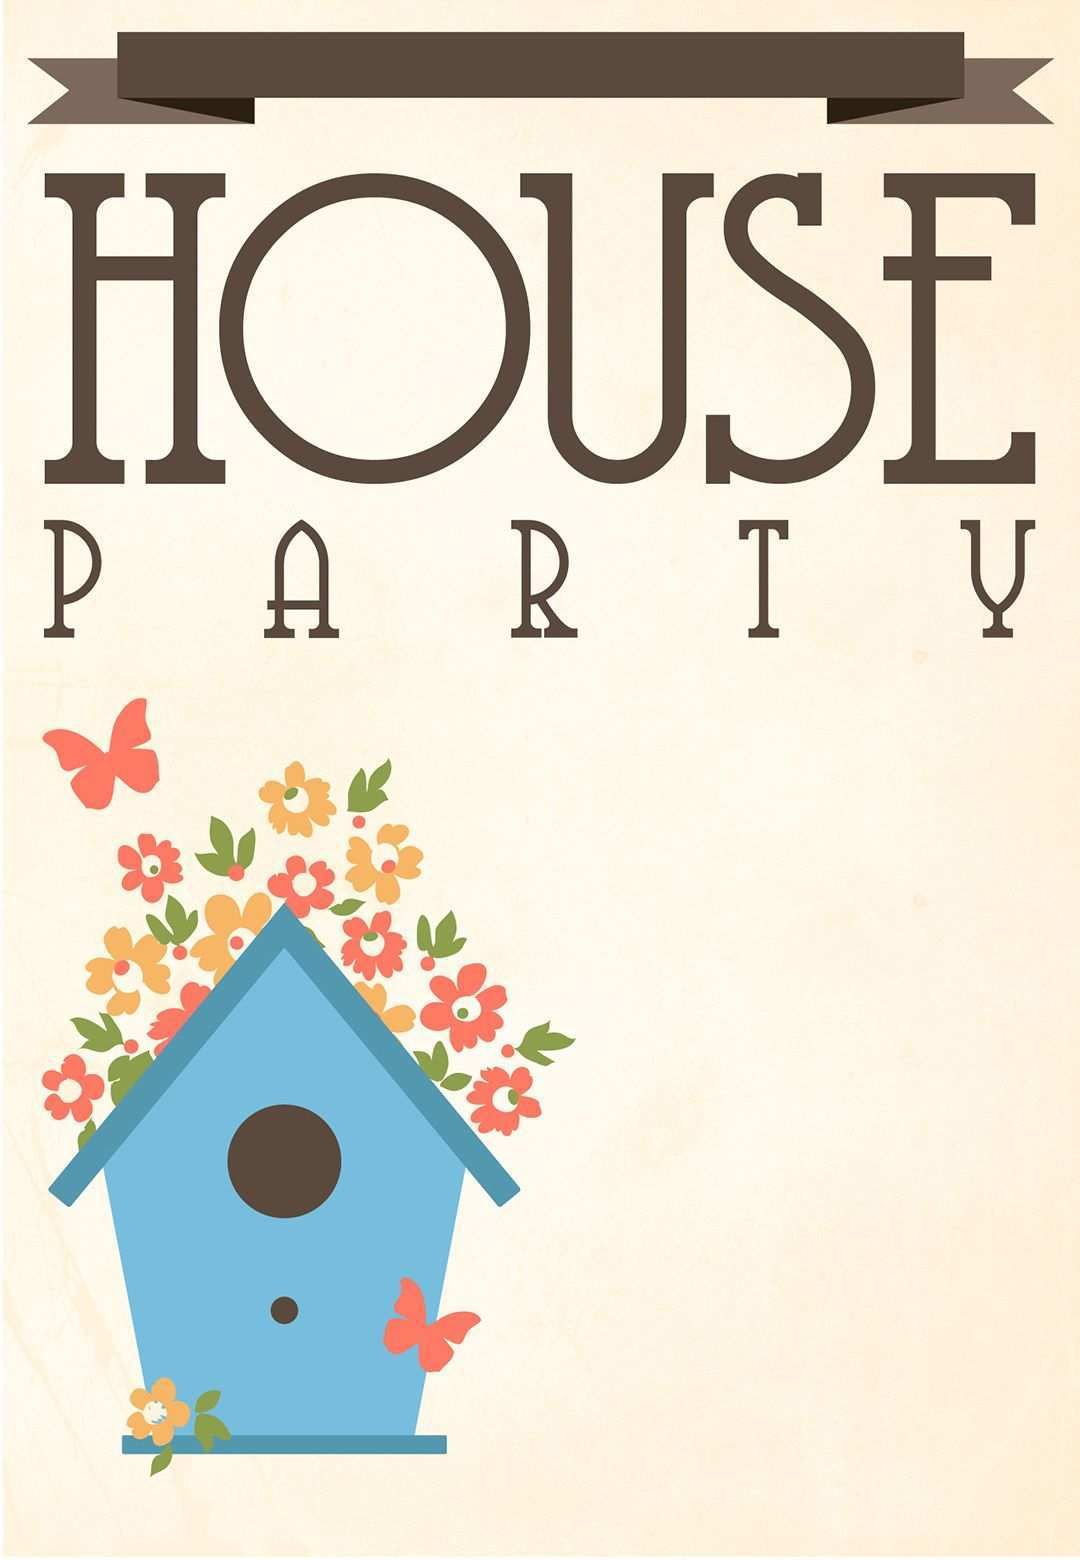 96 Adding House Party Invitation Template Maker for House Party Invitation Template